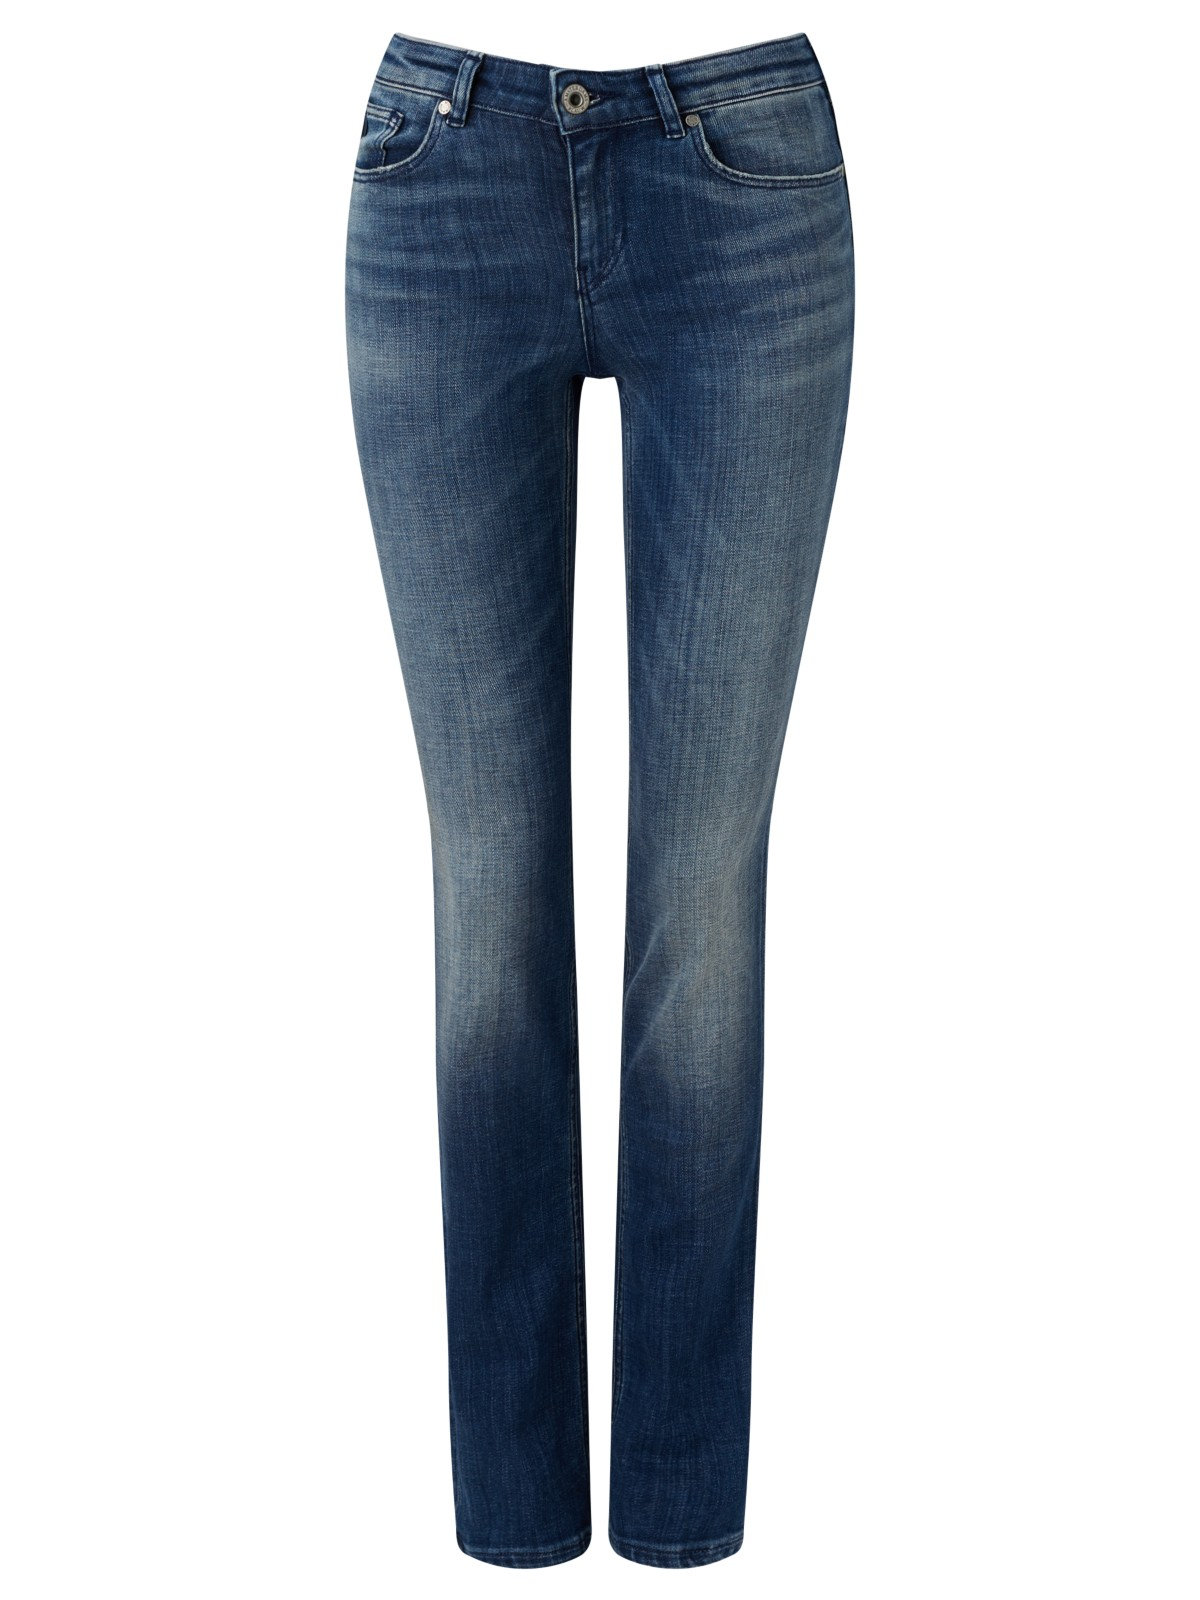 maison scotch supreme mid rise straight jeans in blue lyst. Black Bedroom Furniture Sets. Home Design Ideas